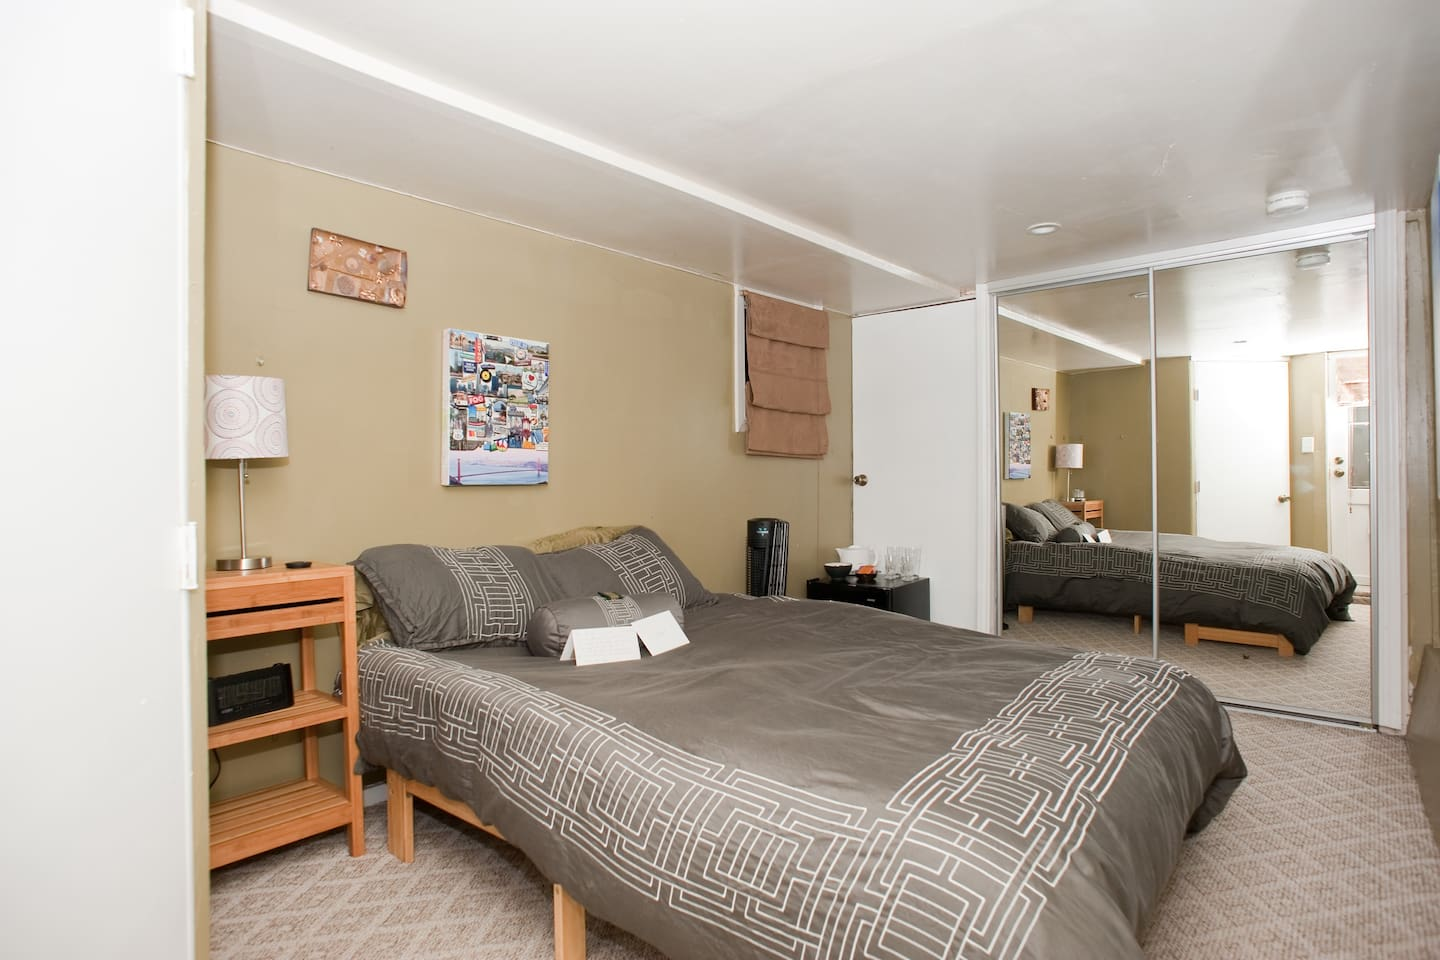 Please check out the next photo because it reflects the improvements we've made to the room. The futon is gone and a super comfortable full size mattress has taken its place along with a lot of other items you'll see in the next photo.A cozy hideaway, nic